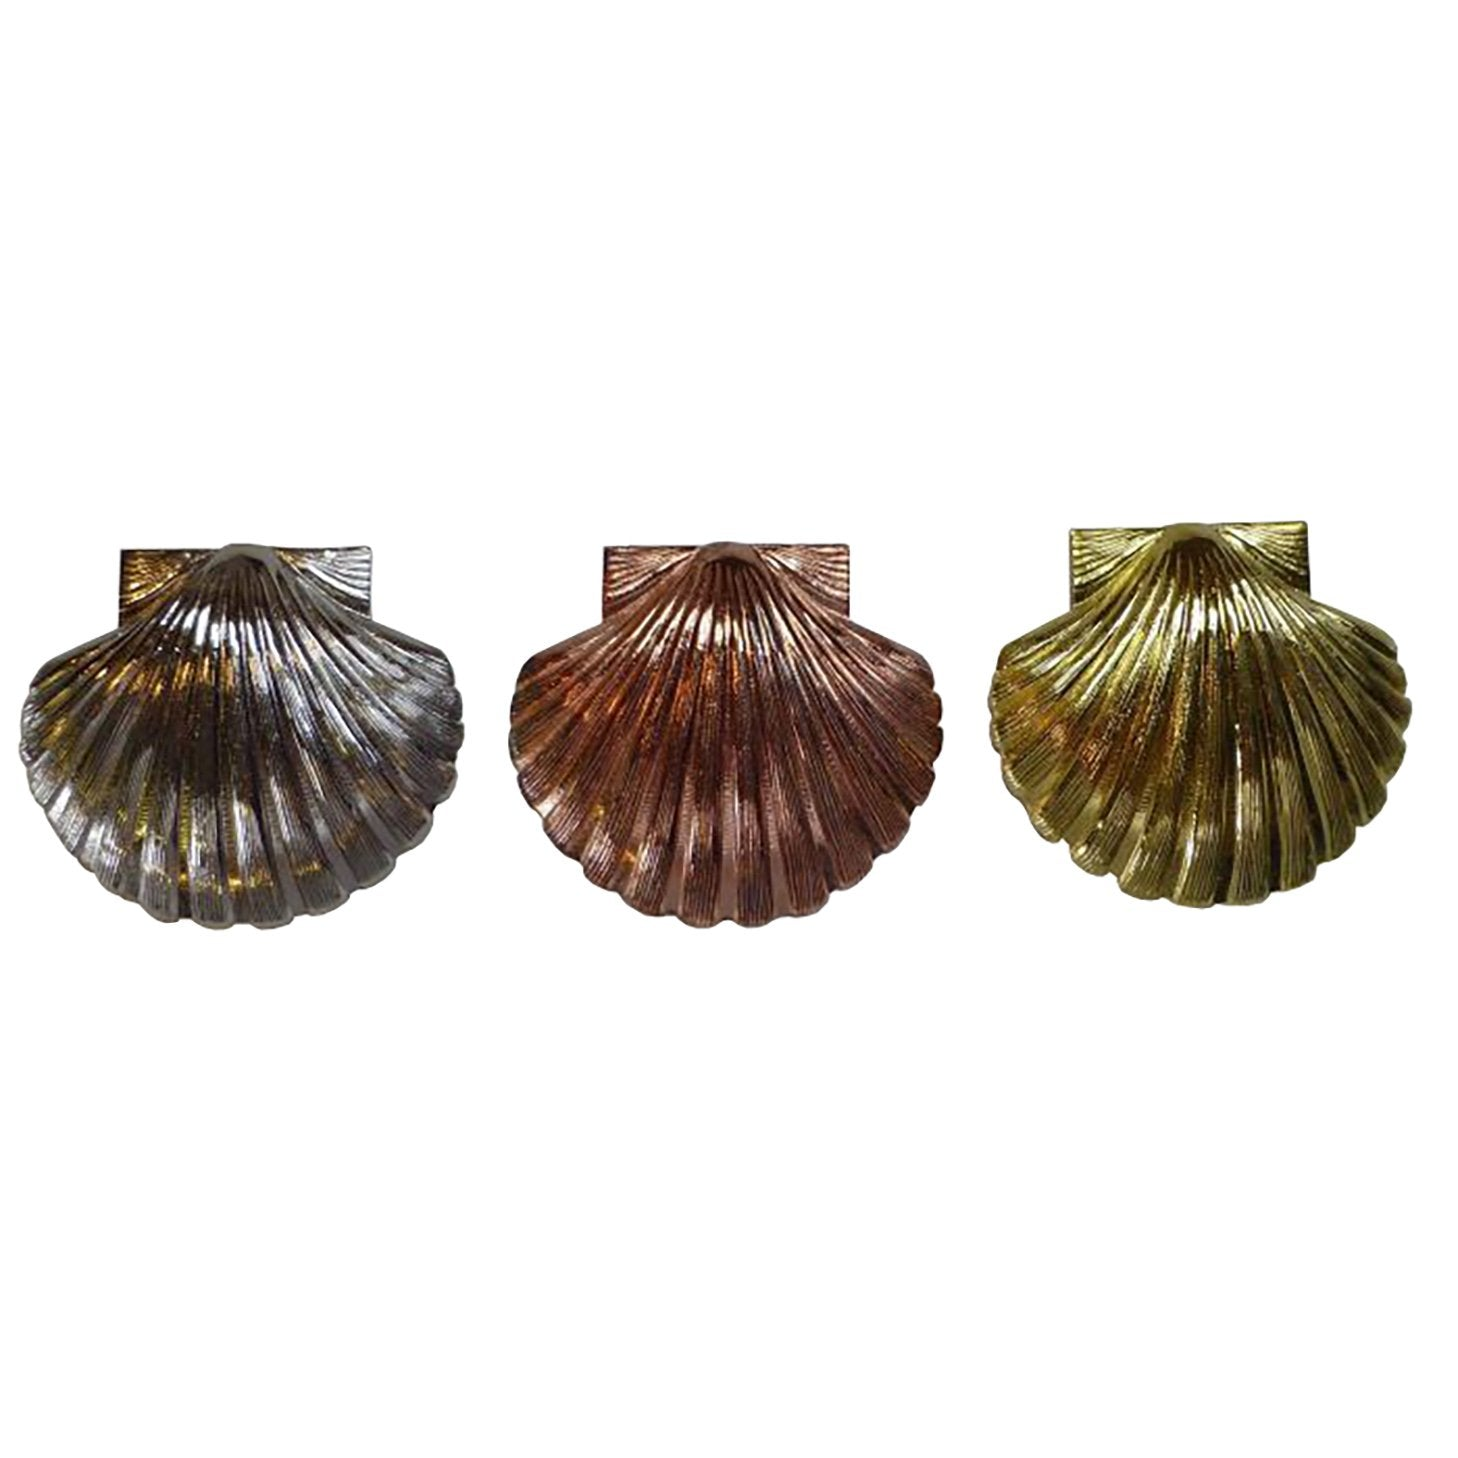 St. Thomas of Acon Shells - Different Sizes and Colors - Bricks Masons